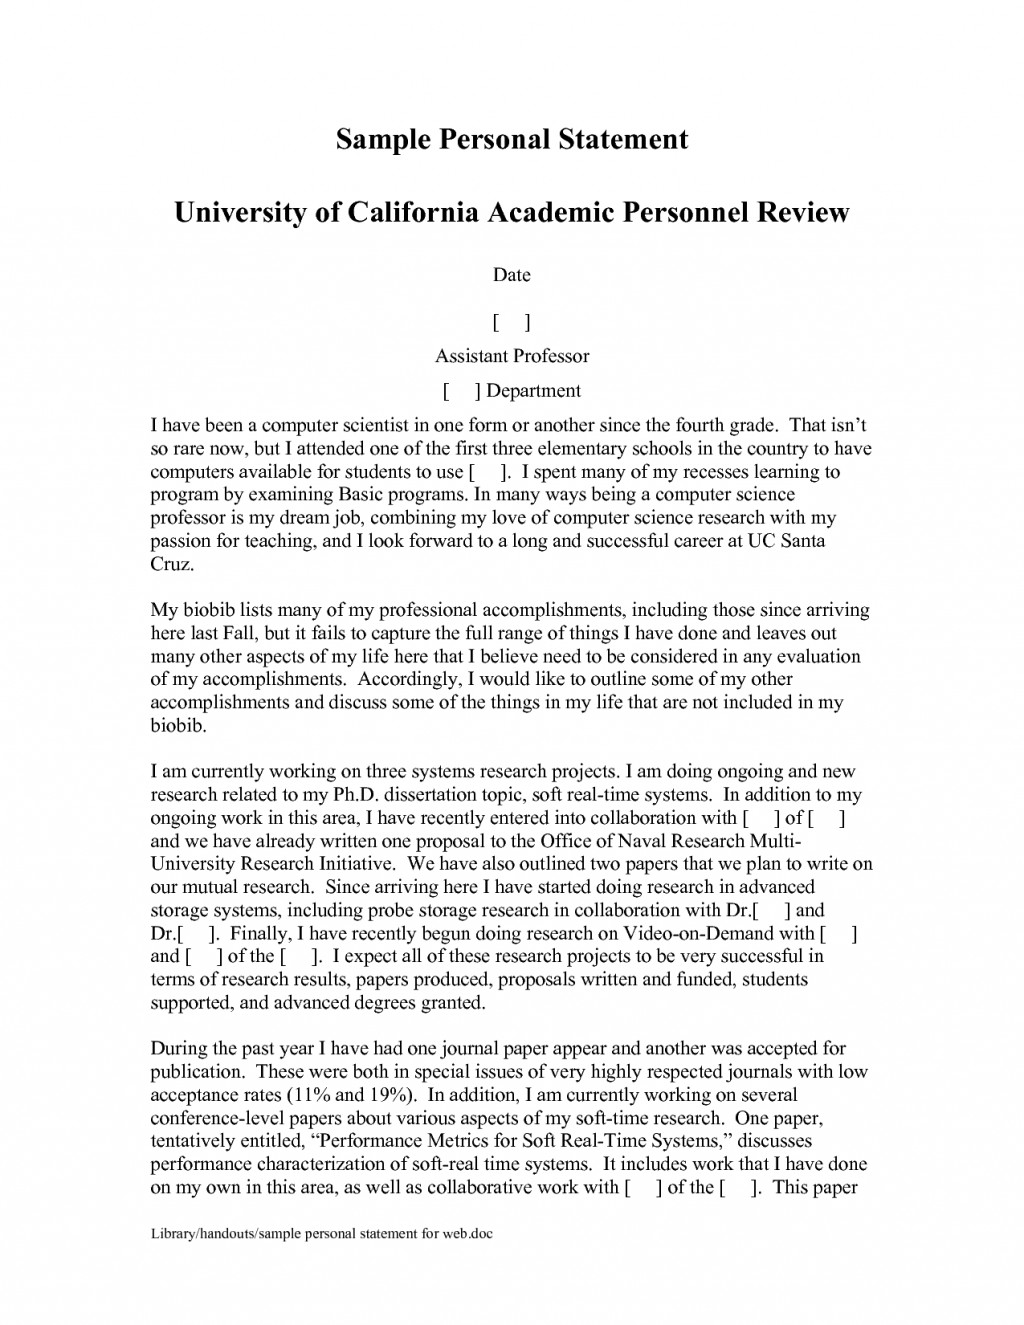 007 Essay Example On Diversity Graduate Personal Statement Template Breathtaking For College Admission Regional In India Indian Culture Large